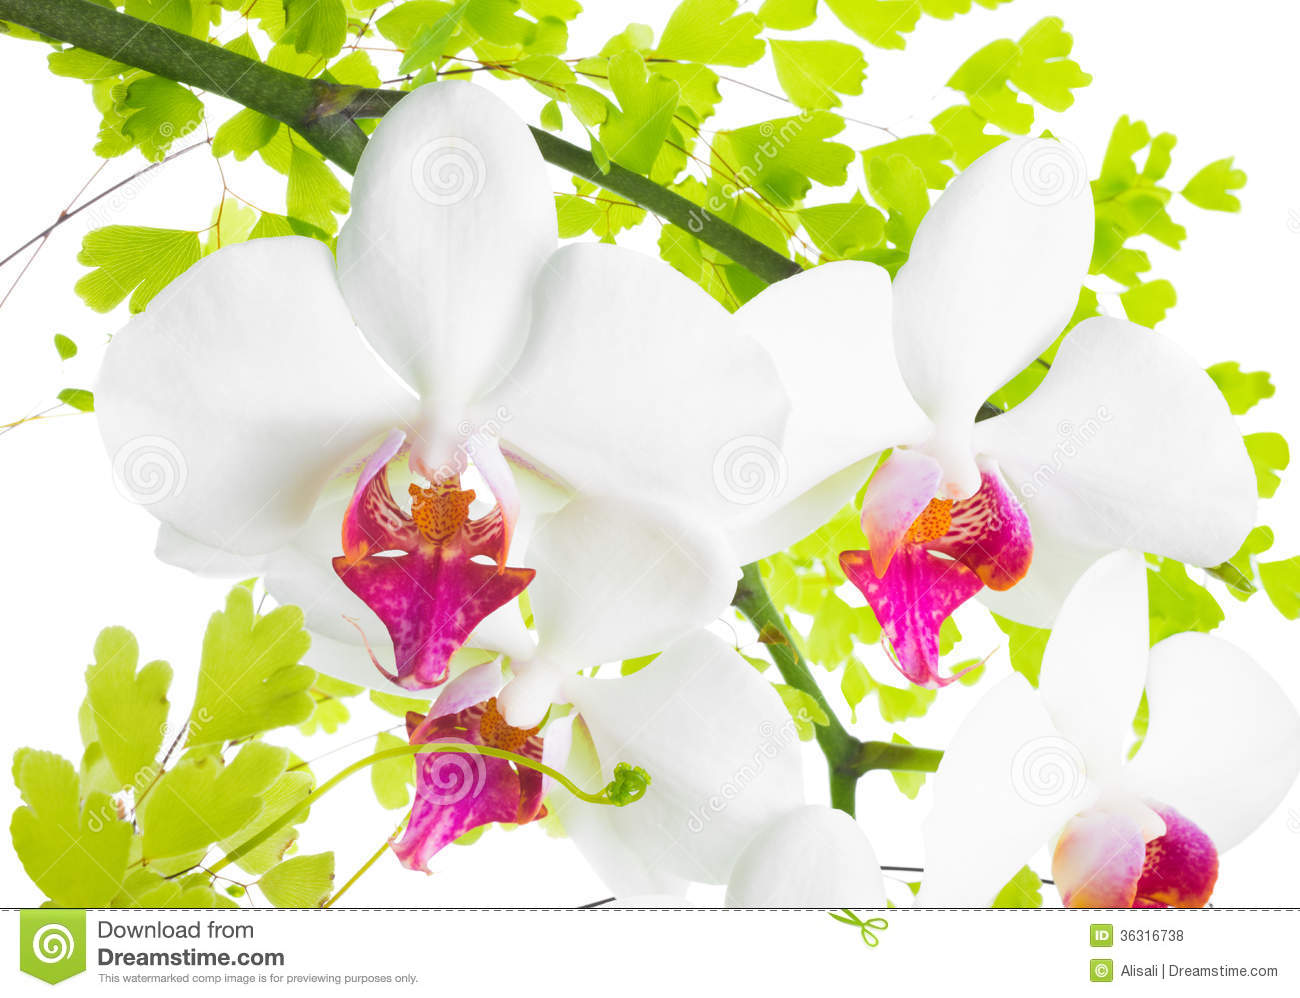 Branches of an orchid and fern are isolated